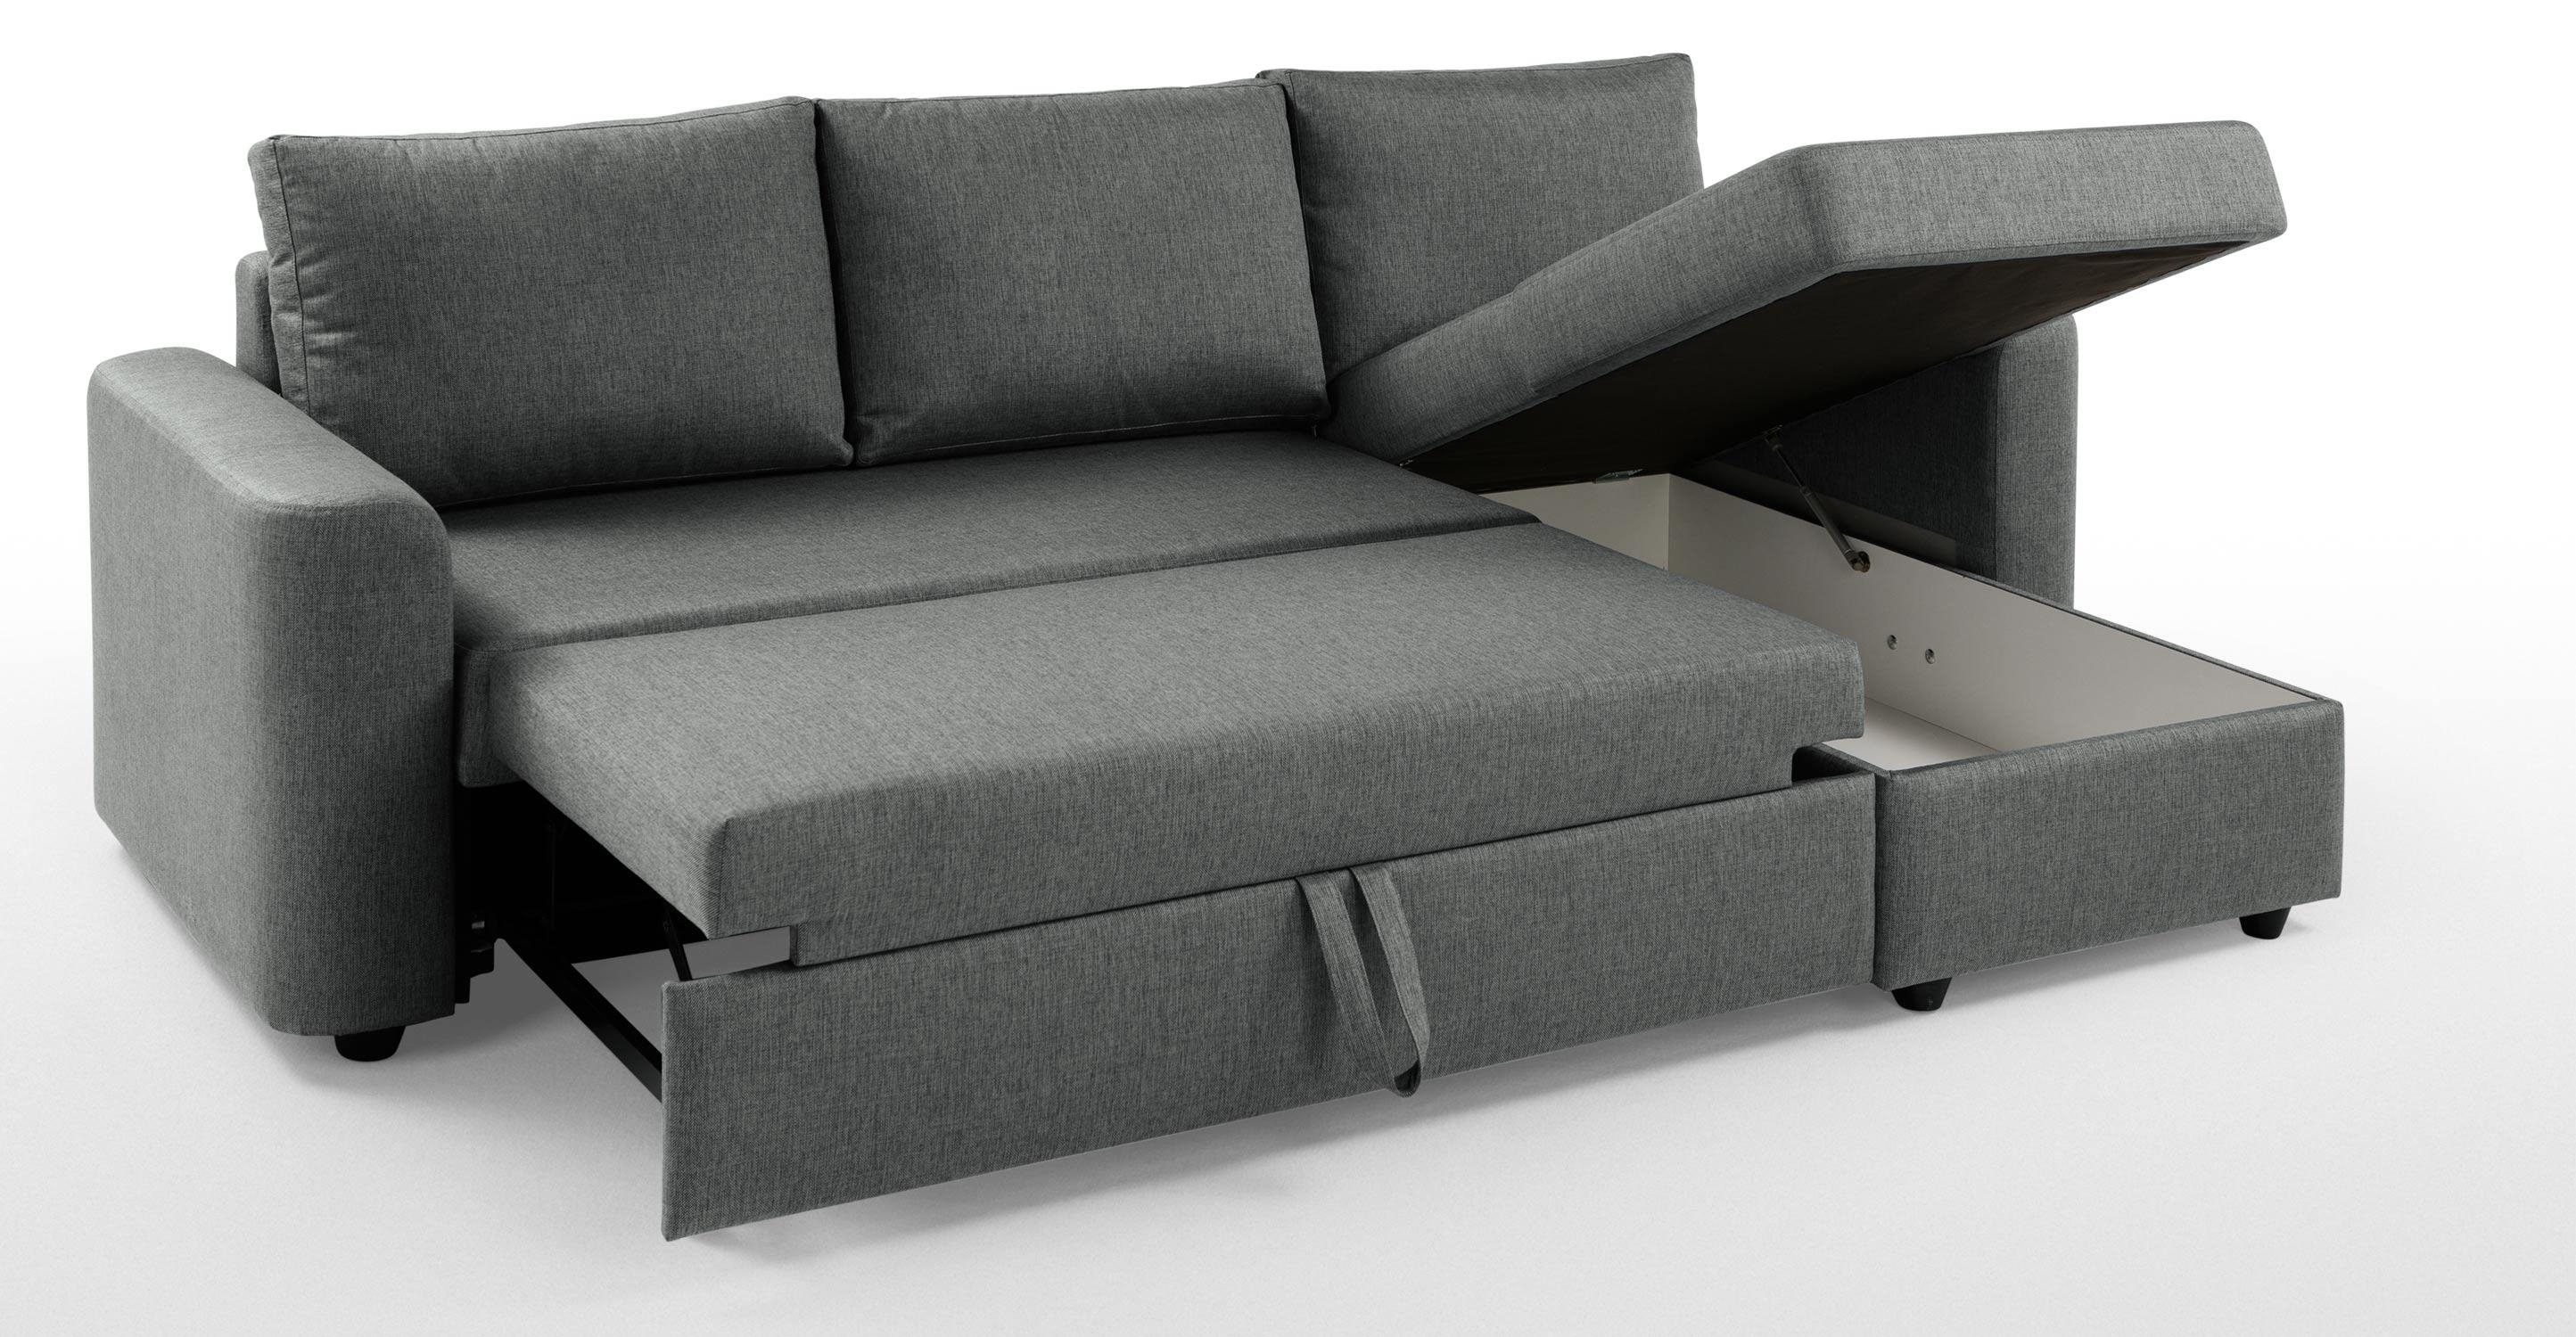 Corner Sofa Bed With Storage London | Centerfieldbar Regarding Sofa Beds With Storages (View 2 of 20)